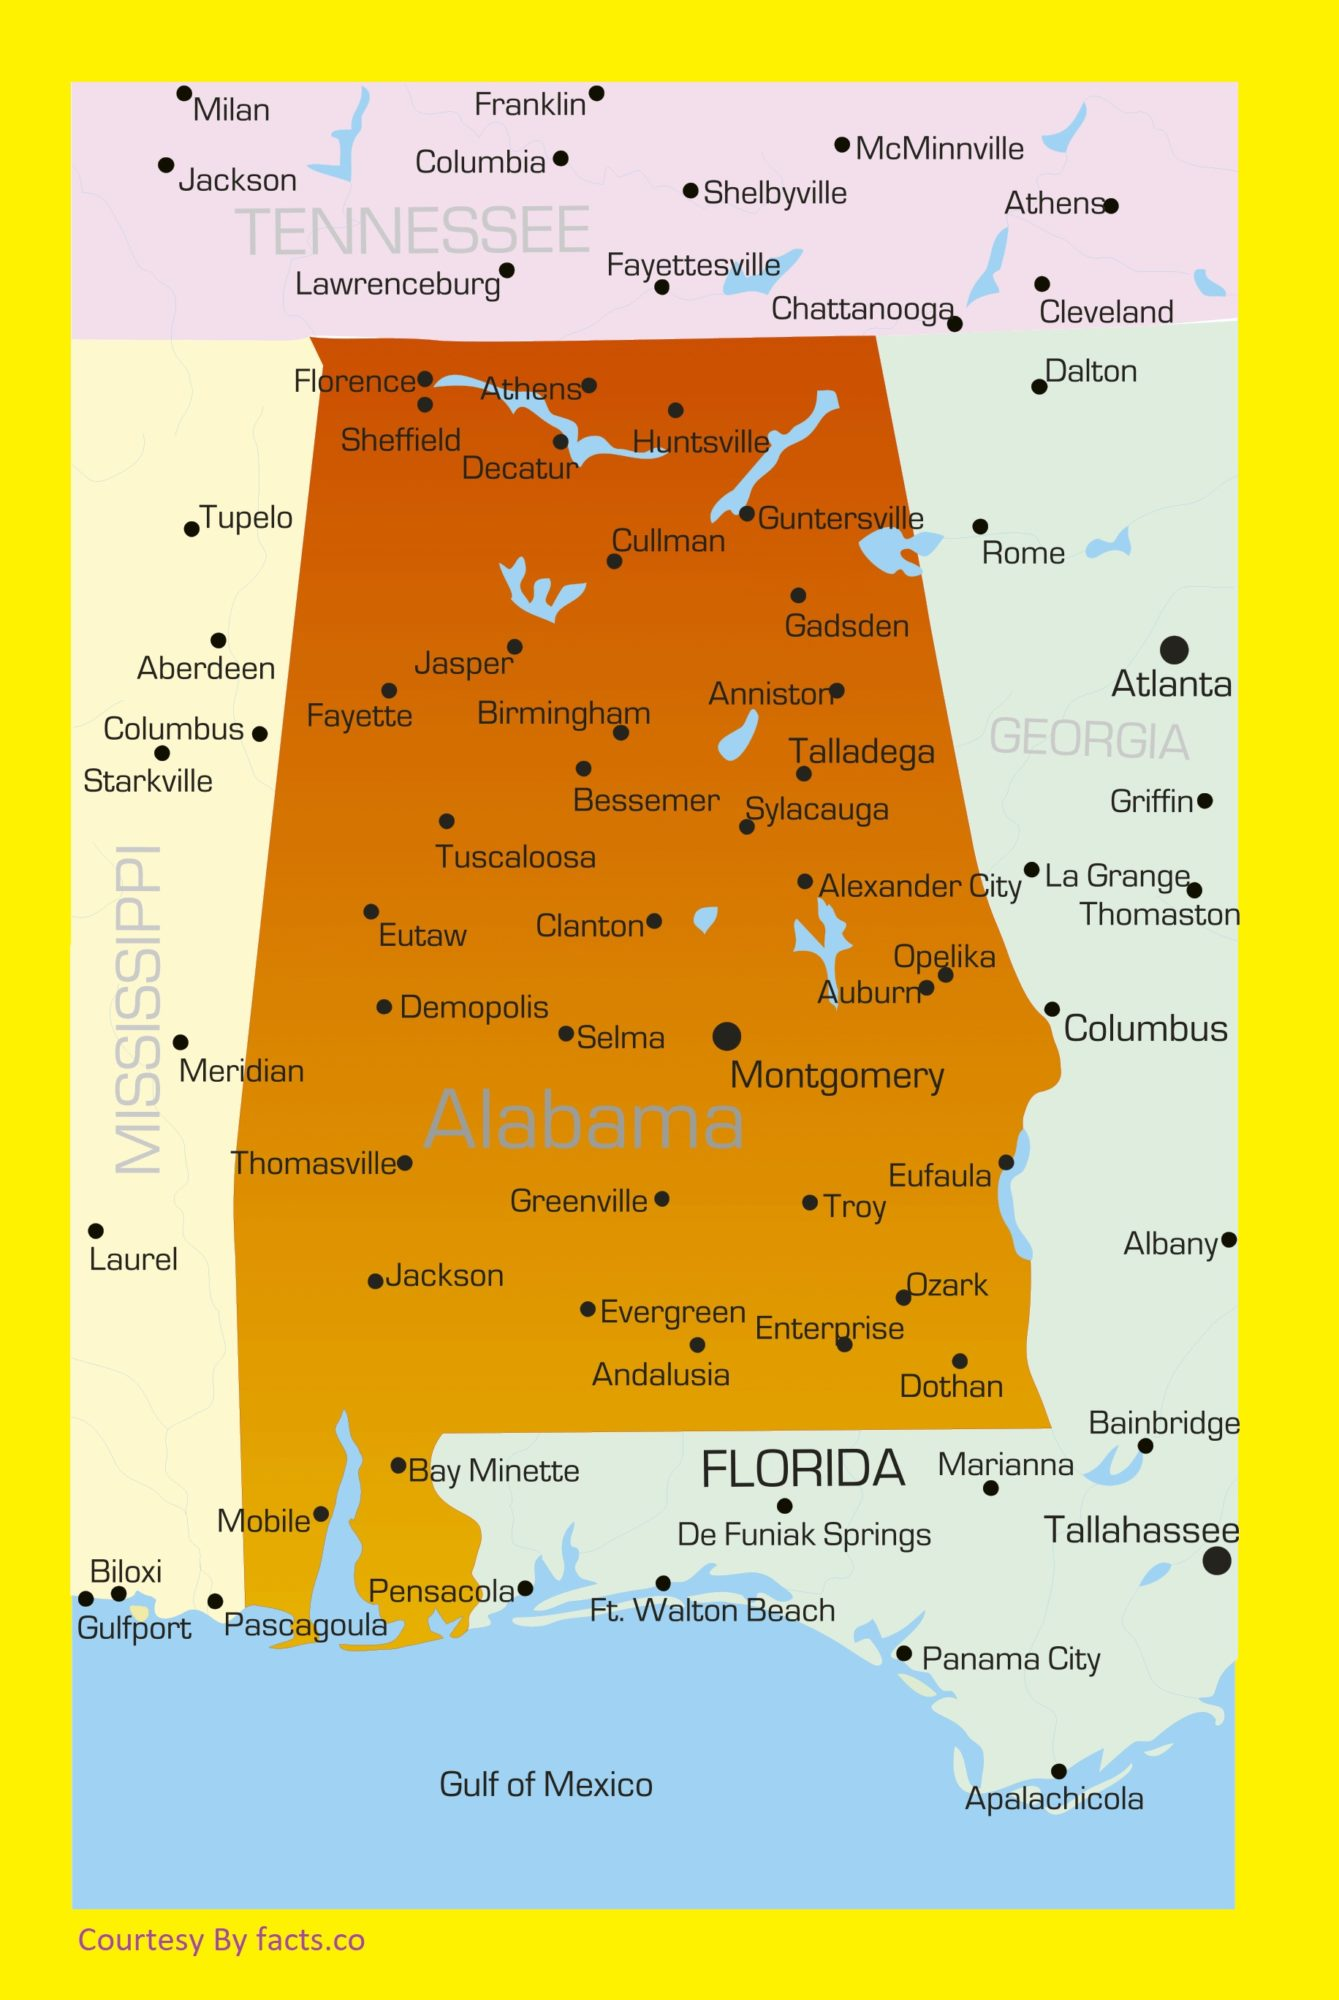 Alabama Large Detailed Label Map | Large Detailed Label Map of Alabama